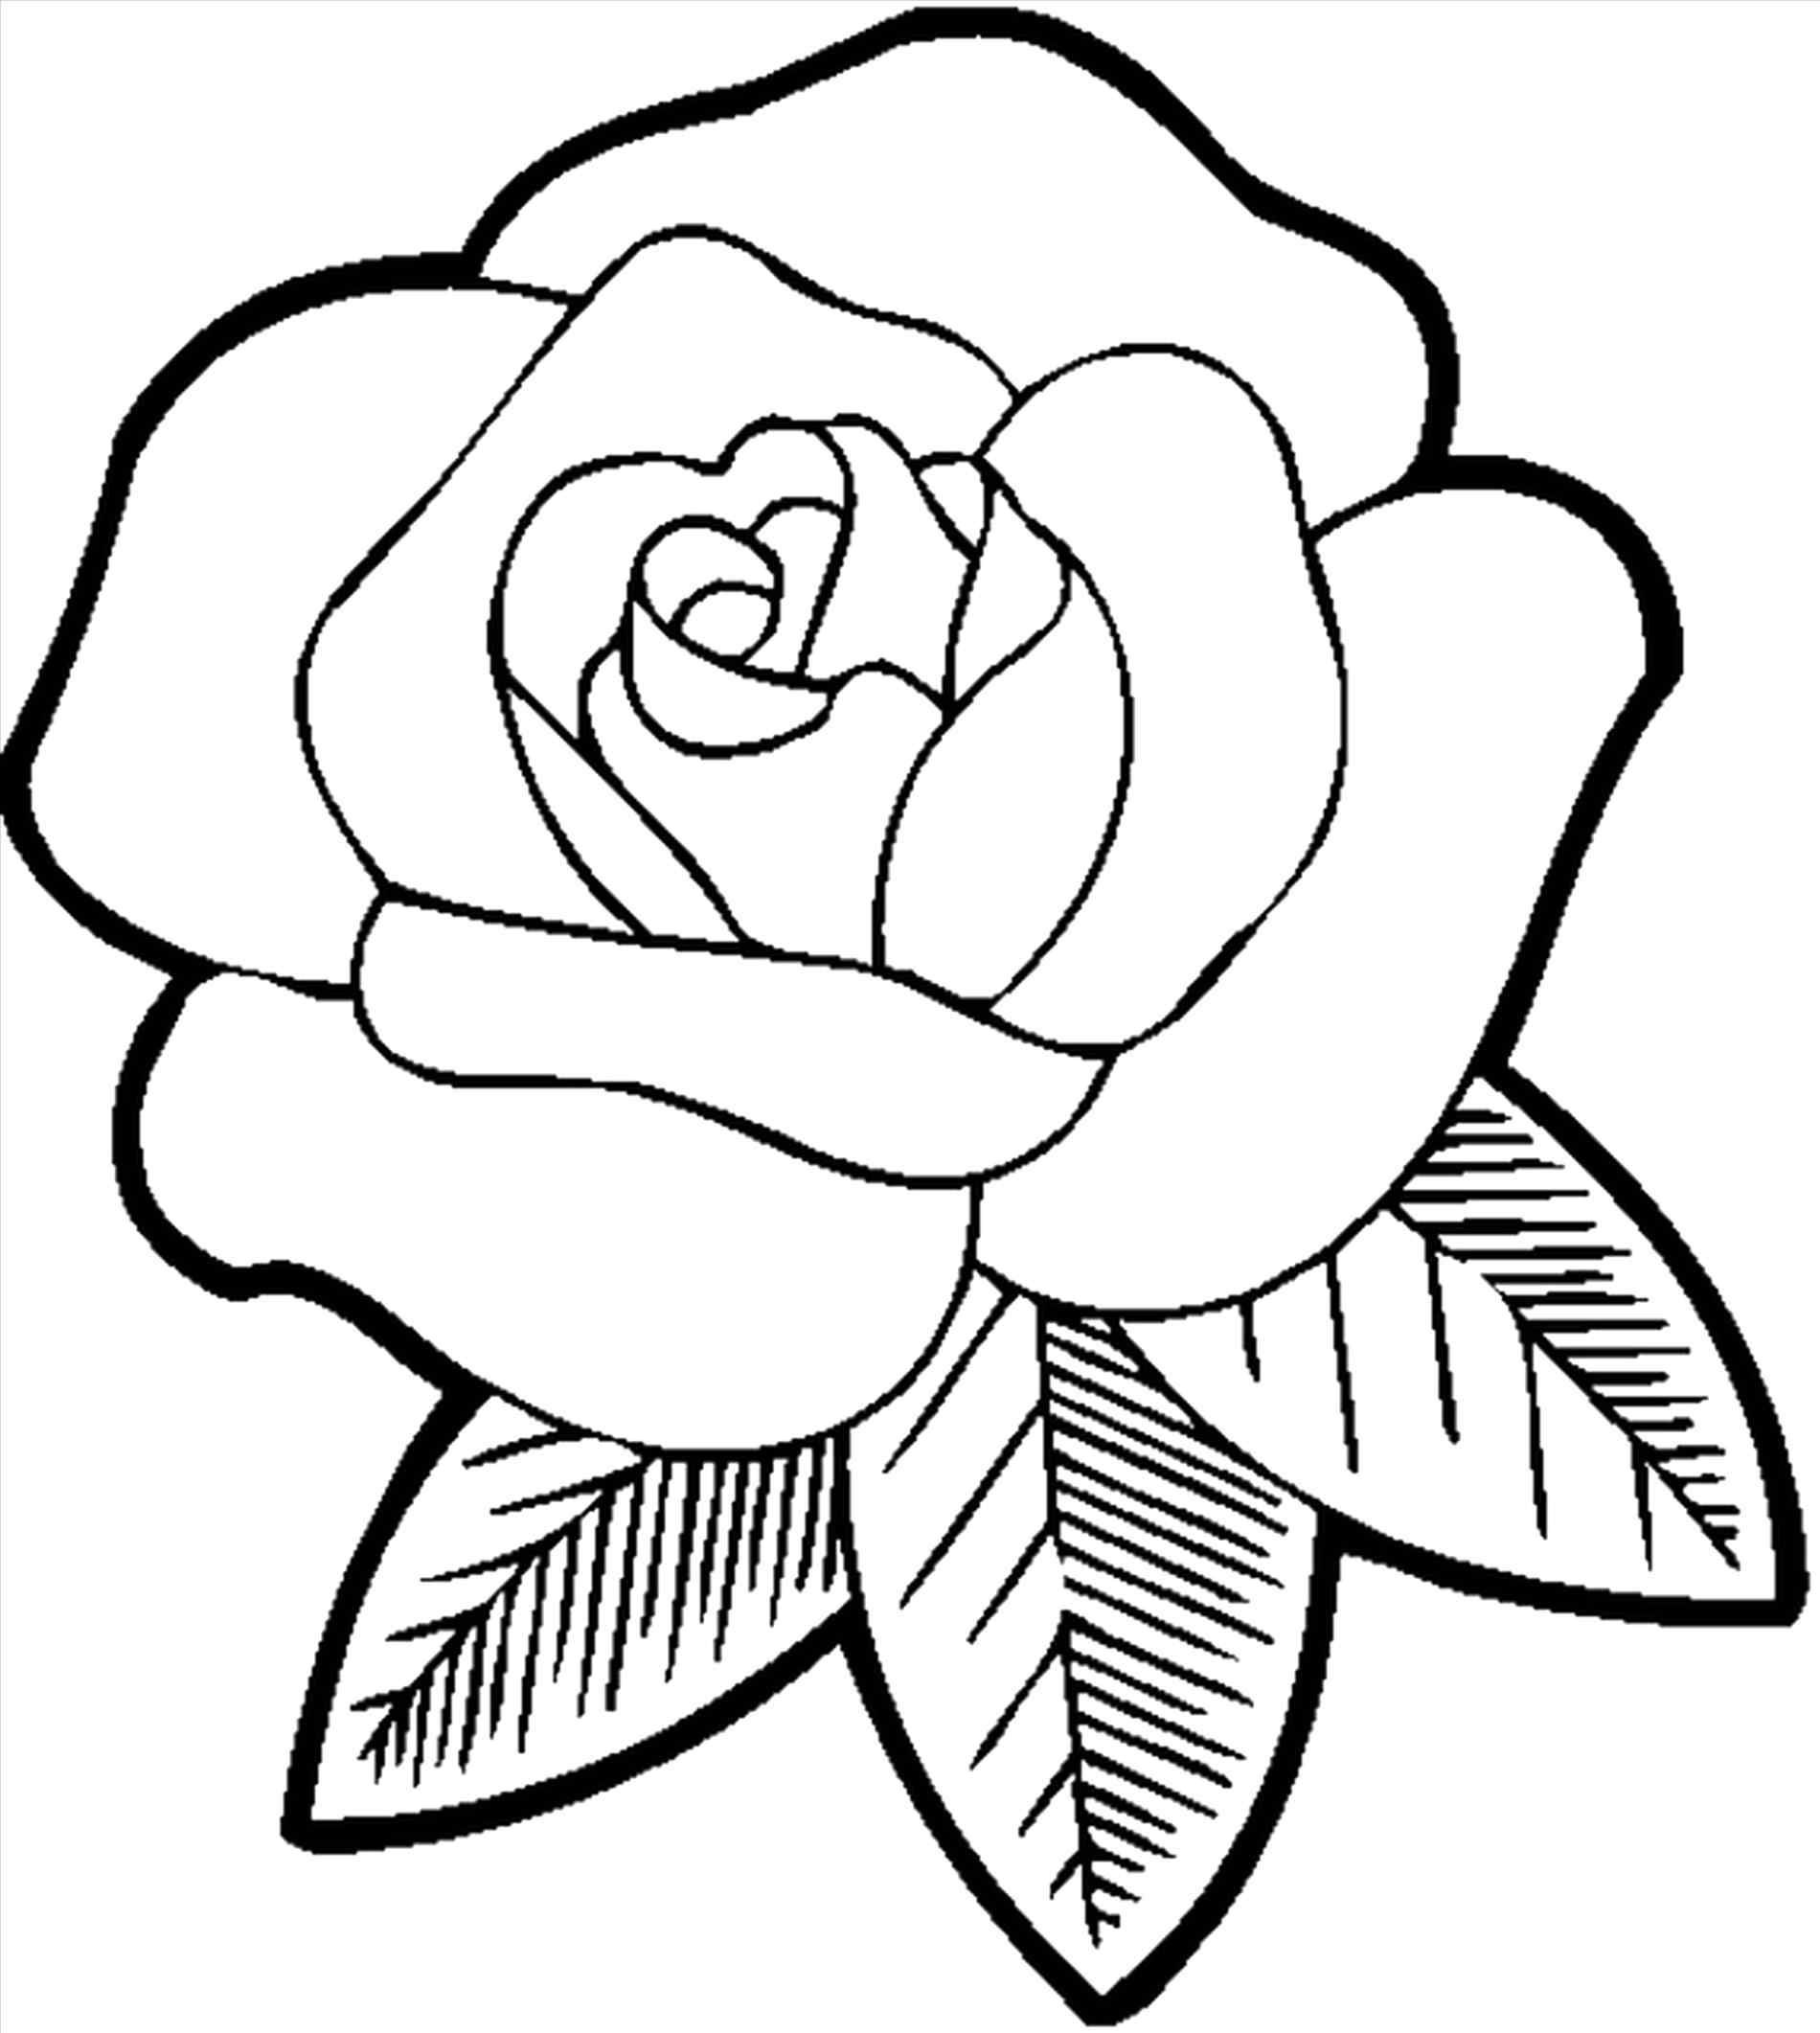 simple rose coloring pages flower coloring pages easy flower coloring pages pages rose simple coloring